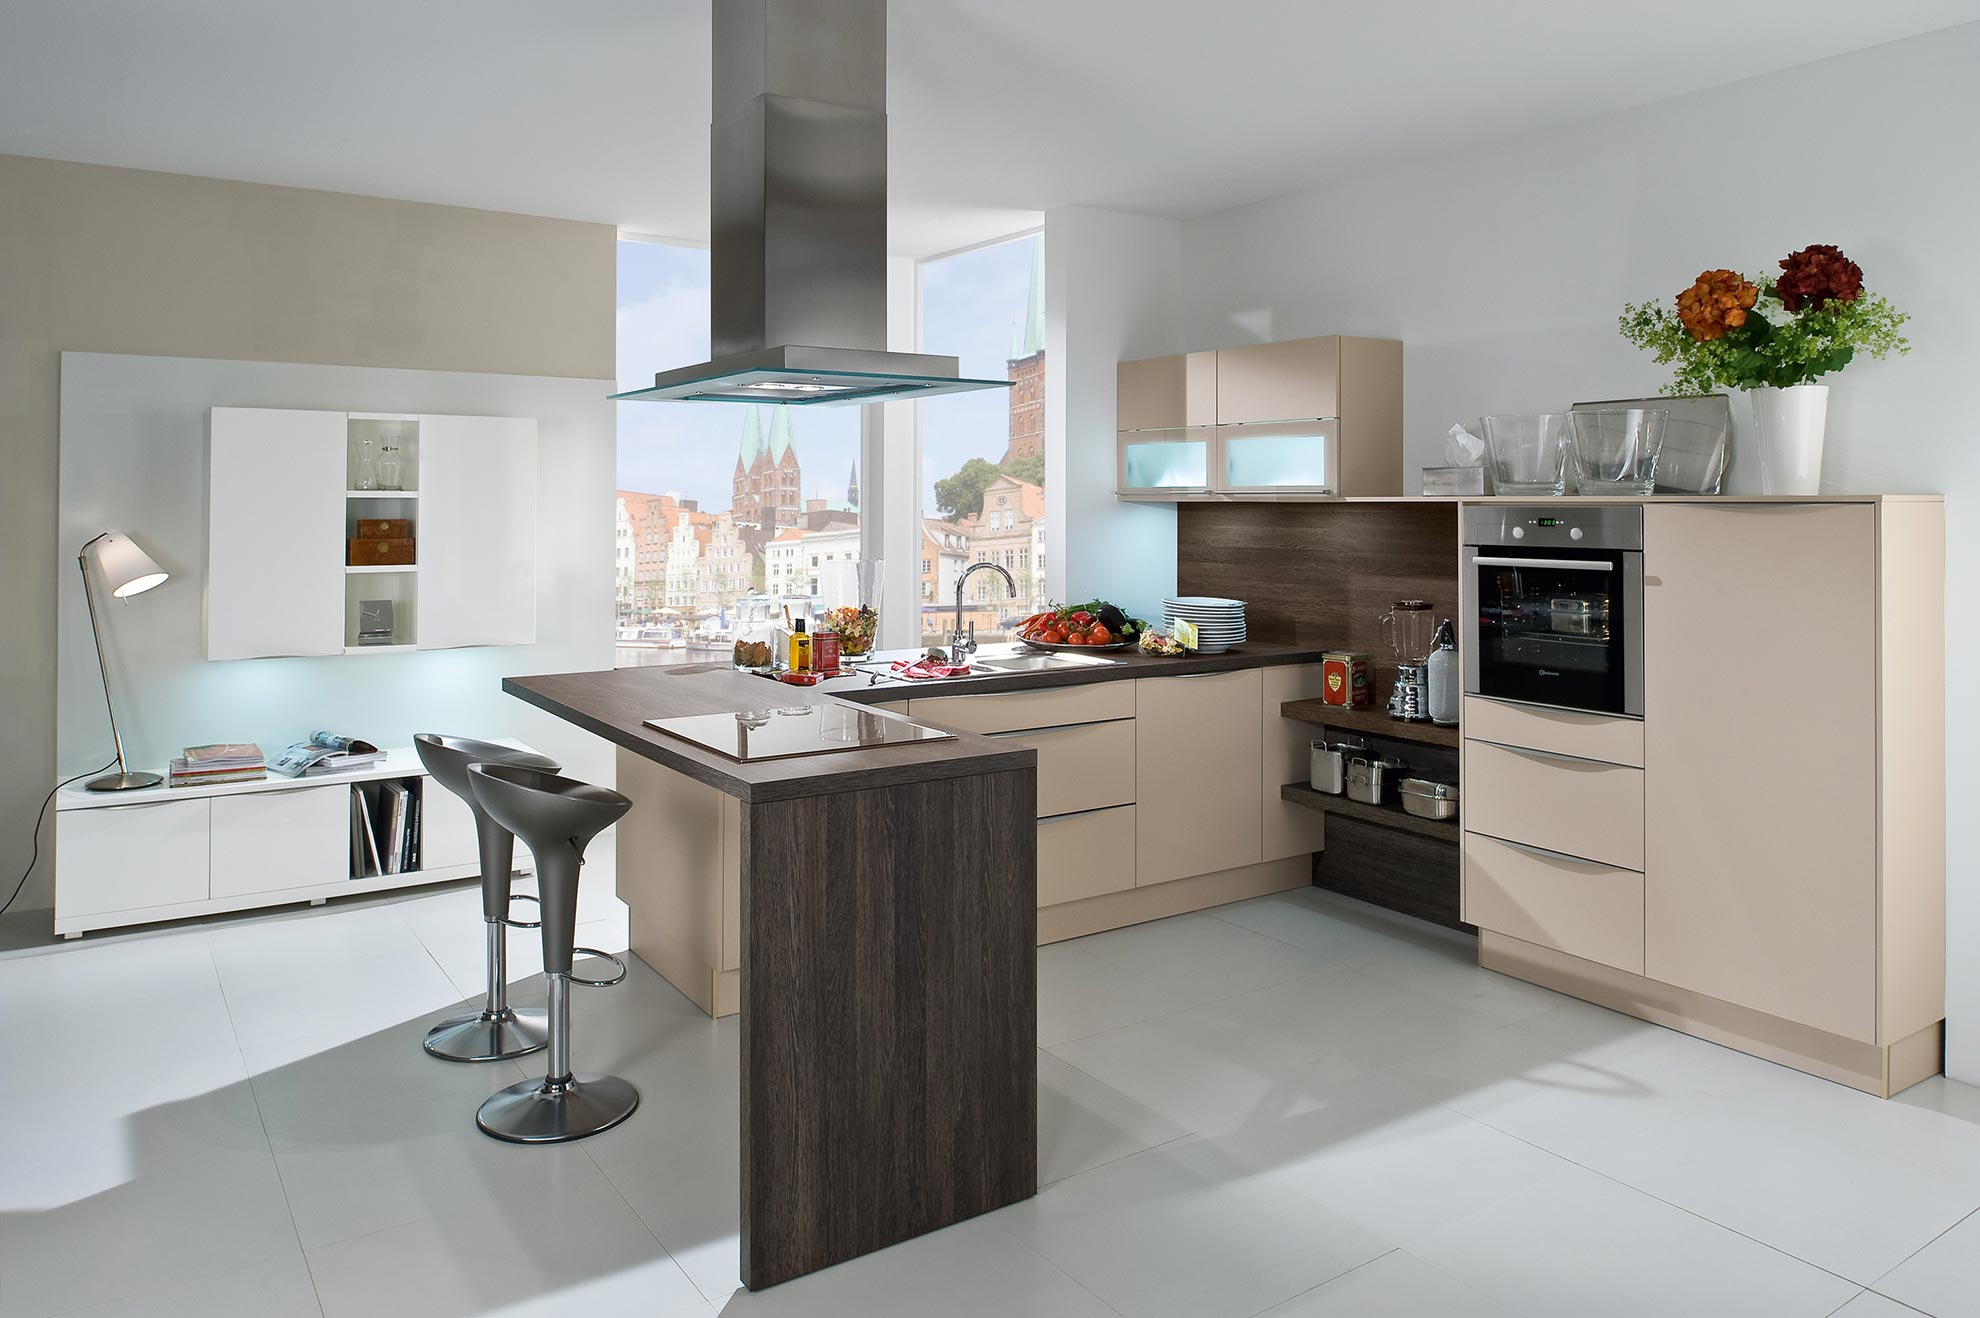 Kitchens bedford hertfordshire bedfordshire fitted kitchen installation for Cuisine model new